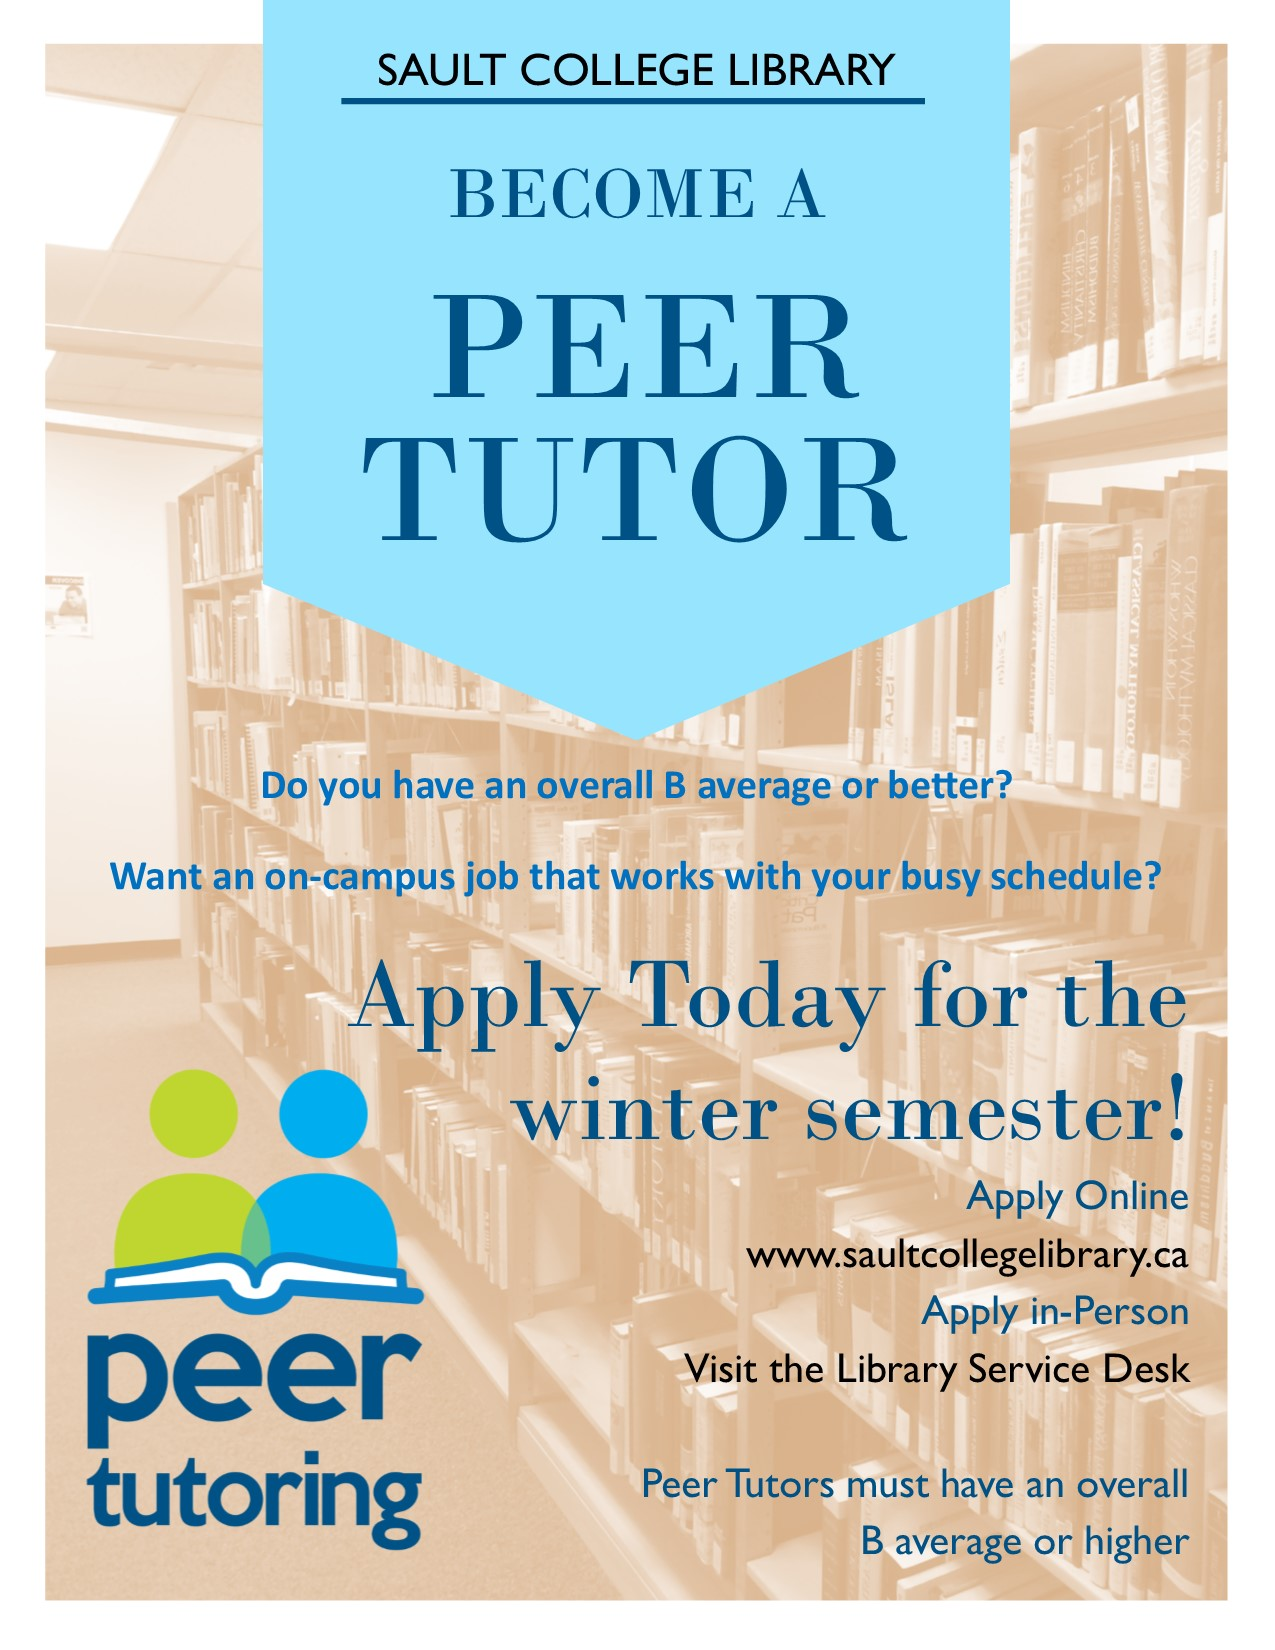 Apply now to be a Peer Tutor in Winter 2020